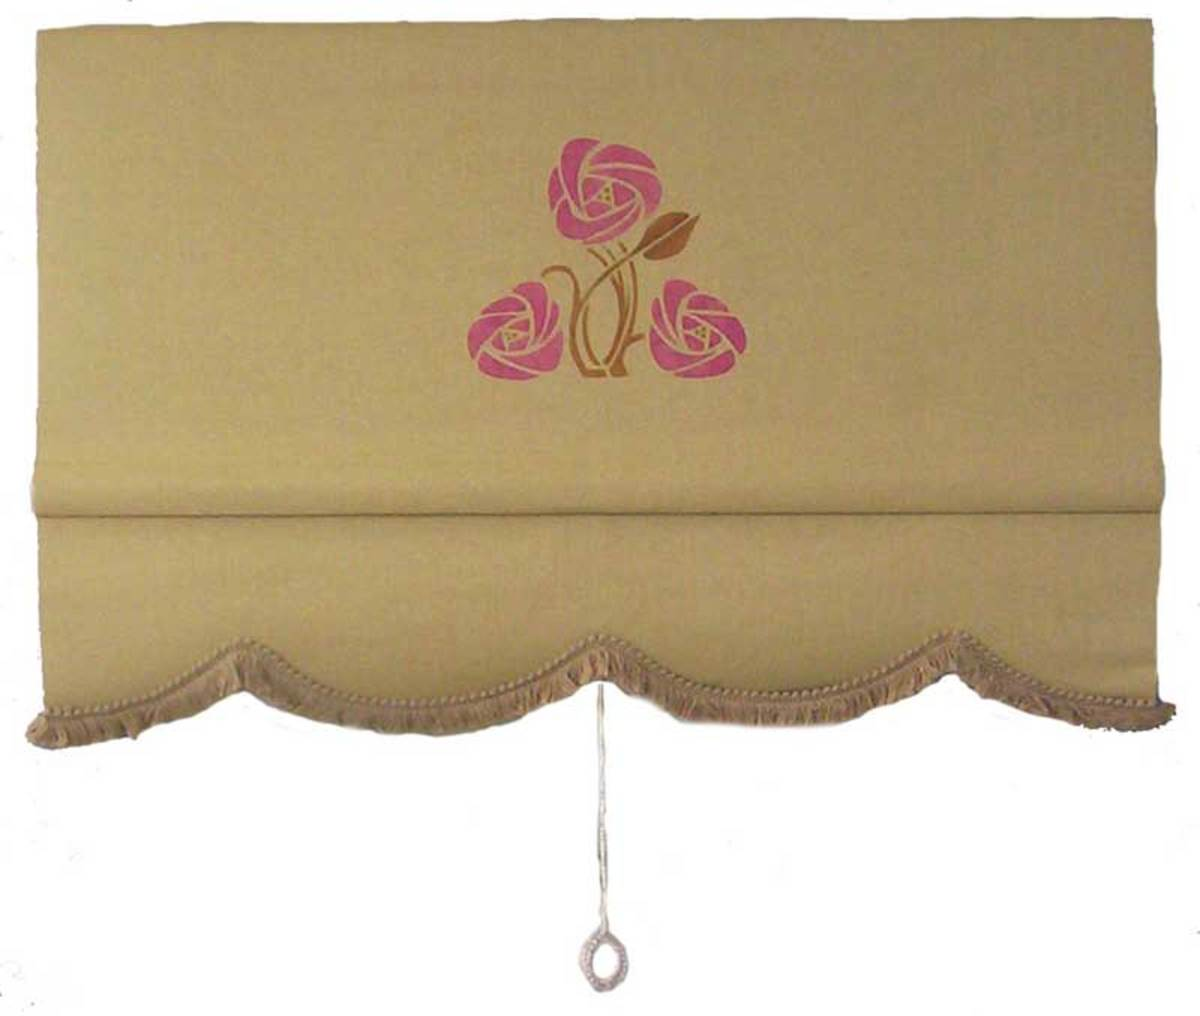 Roller shade offered by Ann Wallace, with rose pattern.